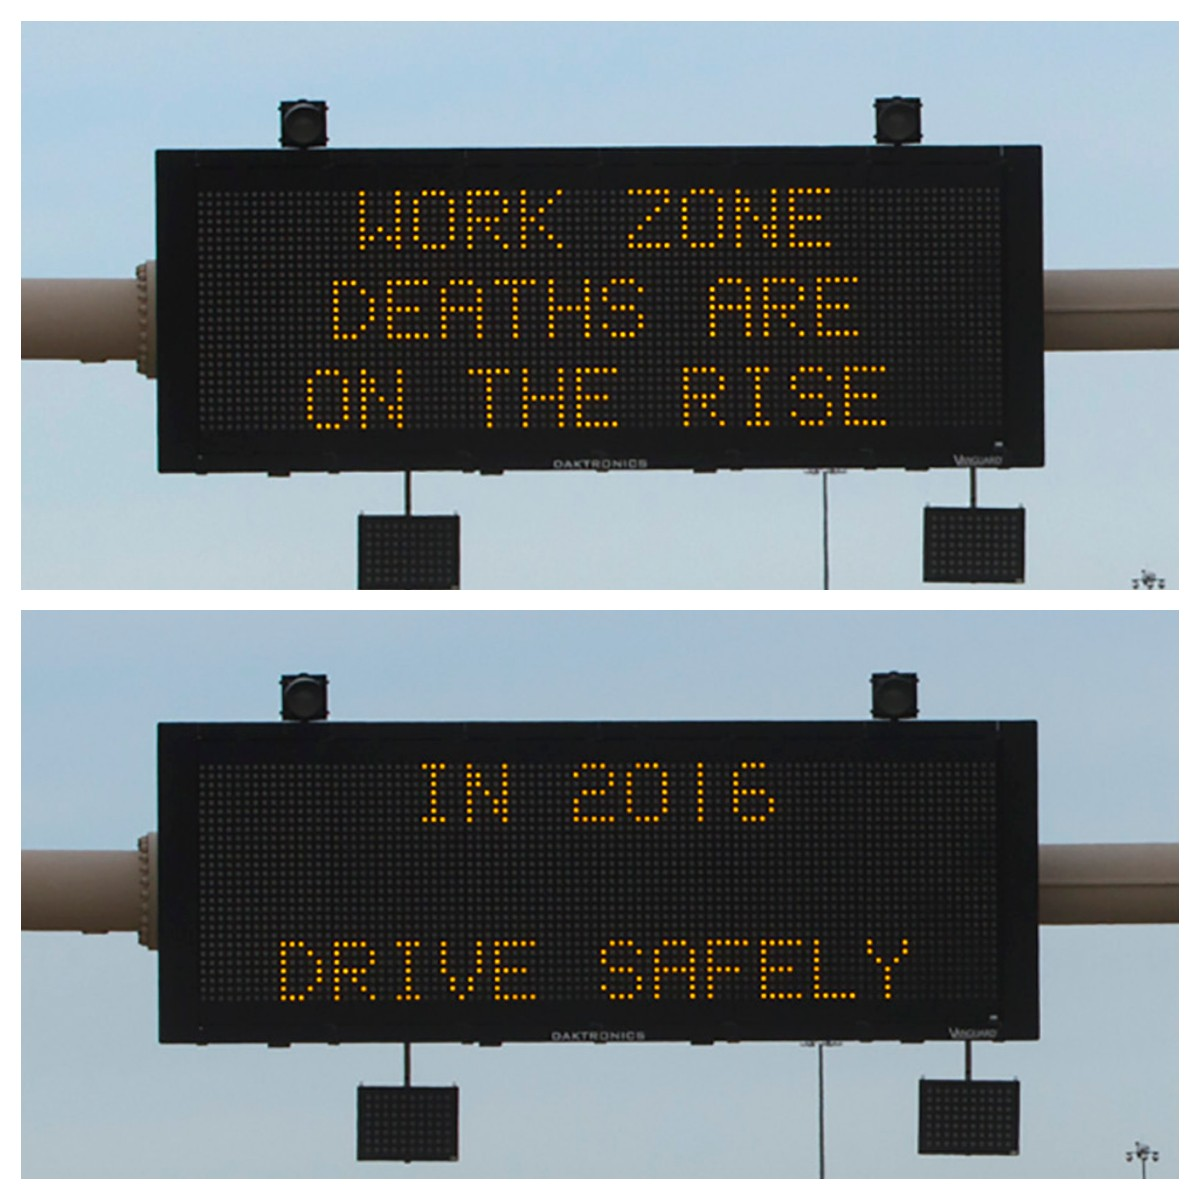 /content/dam/ok/en/odot/images/message-signs/12.07.16.jpg